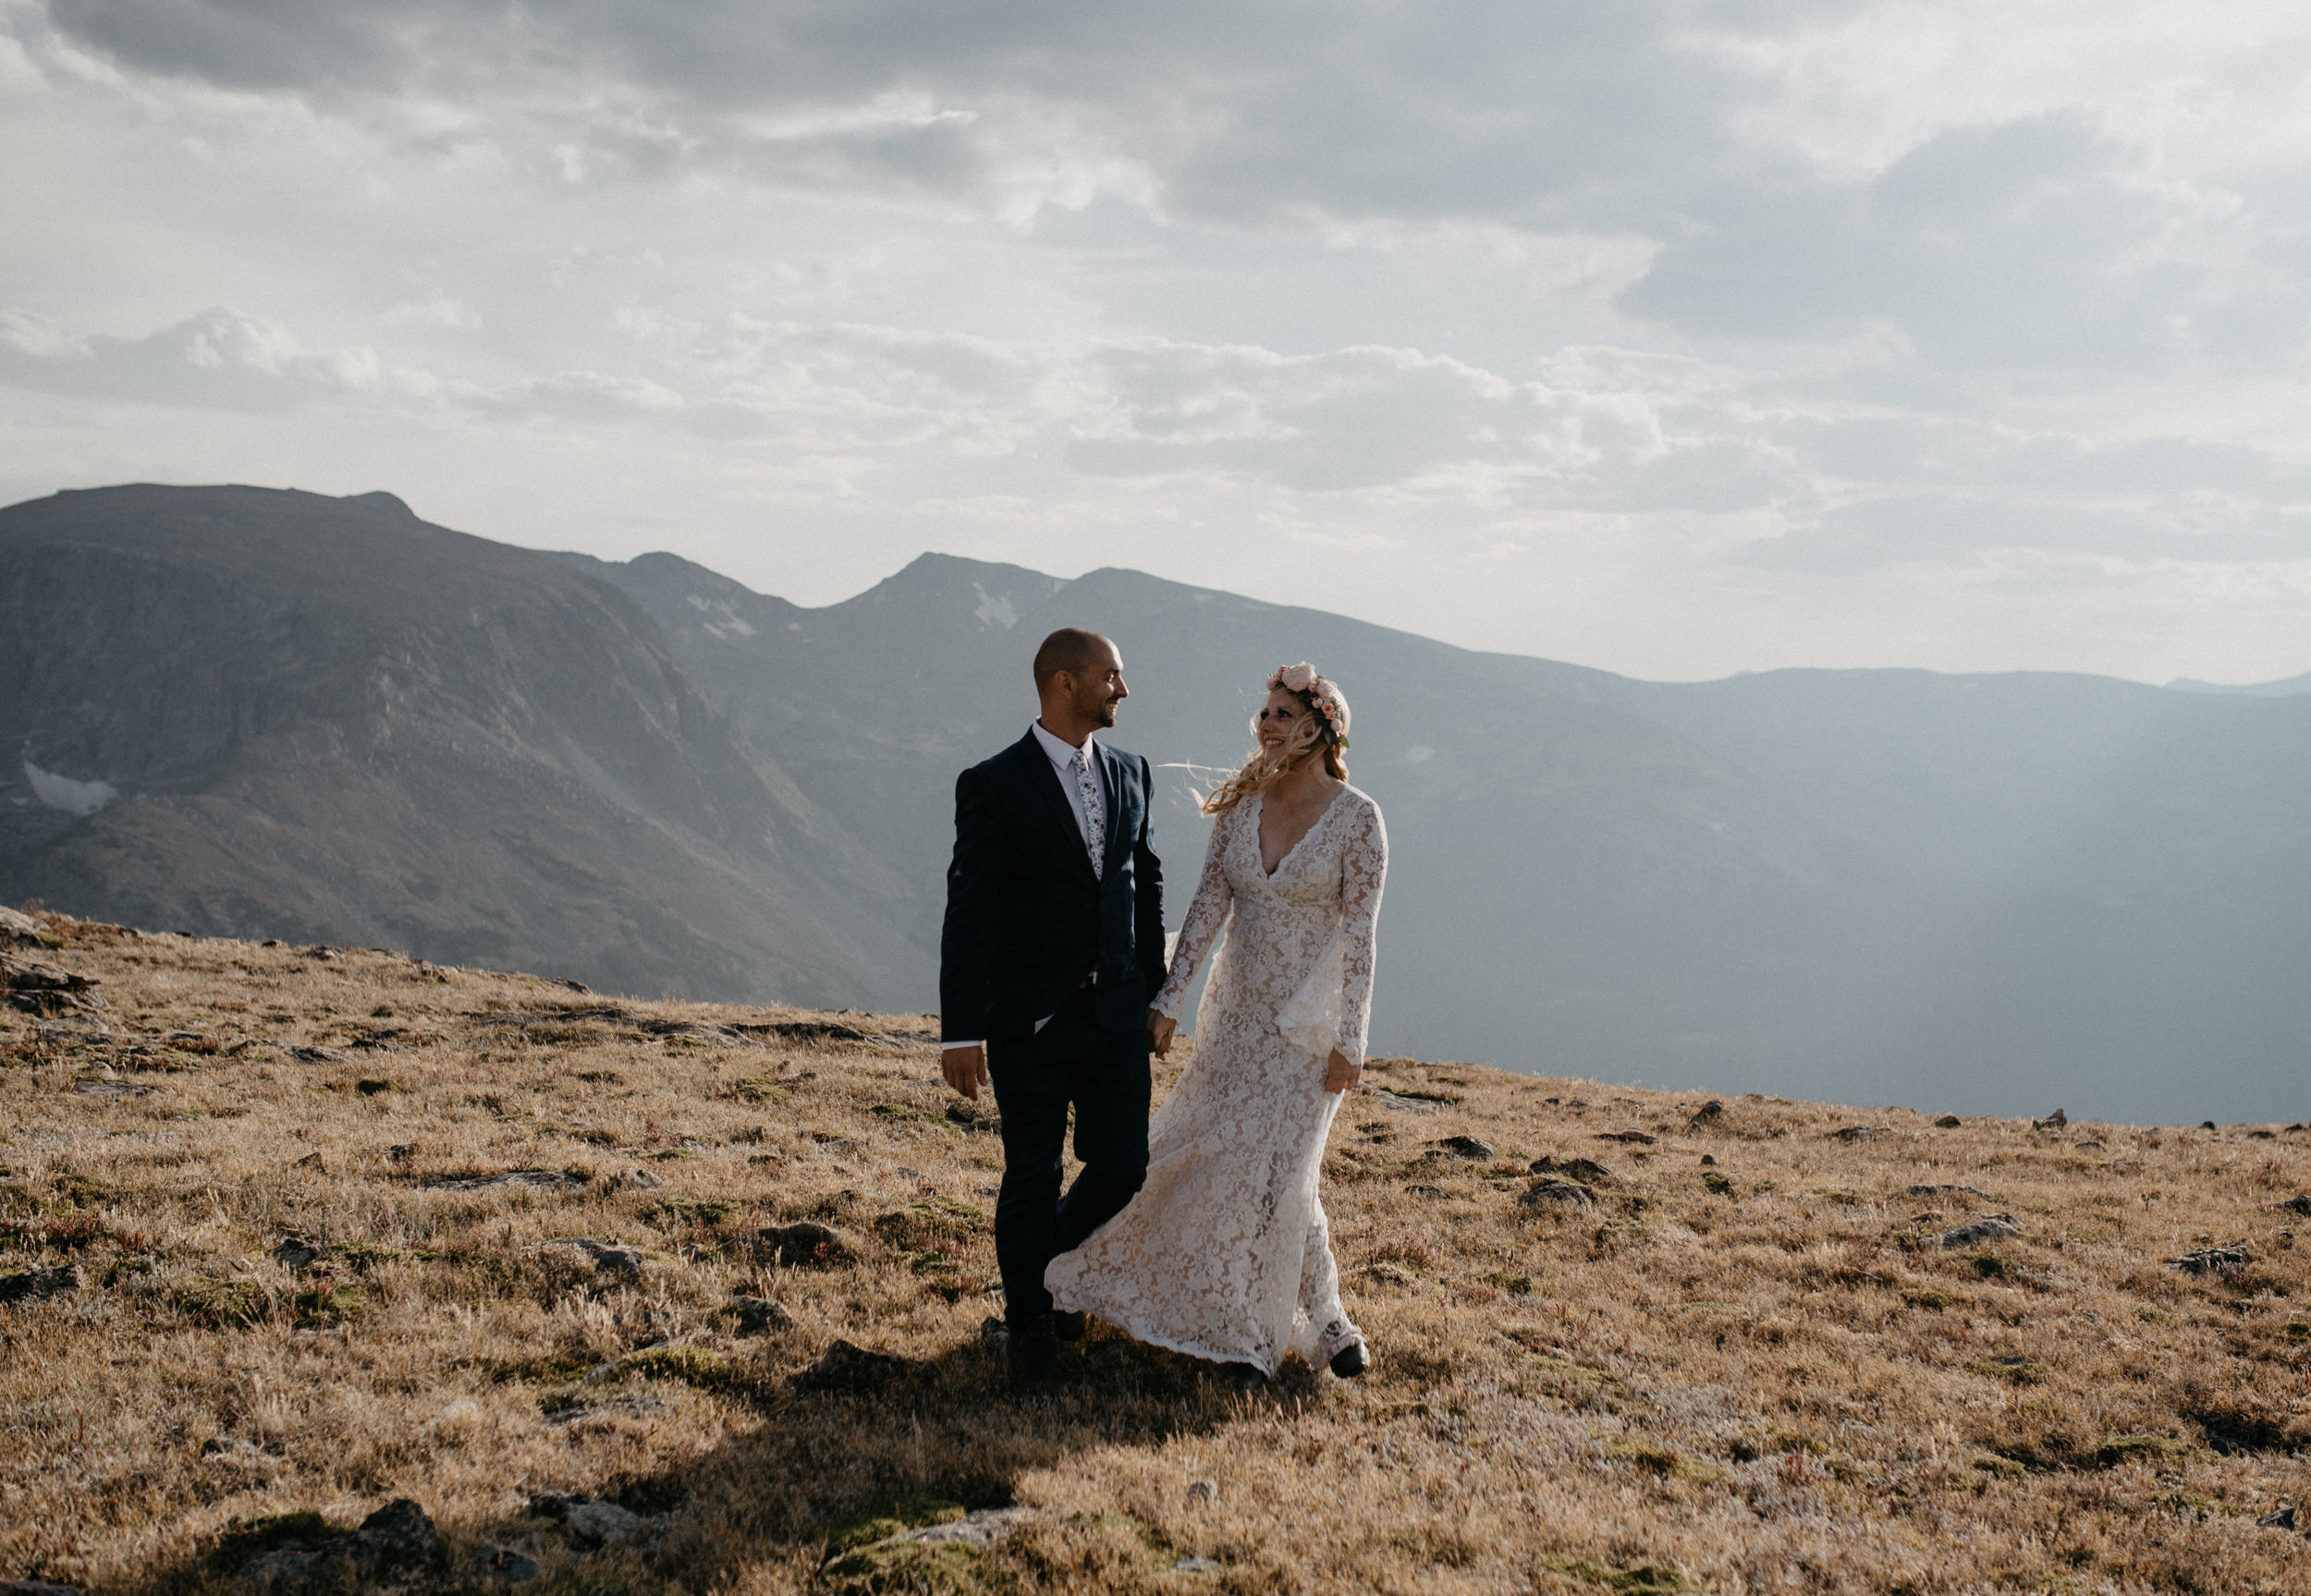 Colorado elopement photography based in Denver. Rocky Mountain National Park elopement.